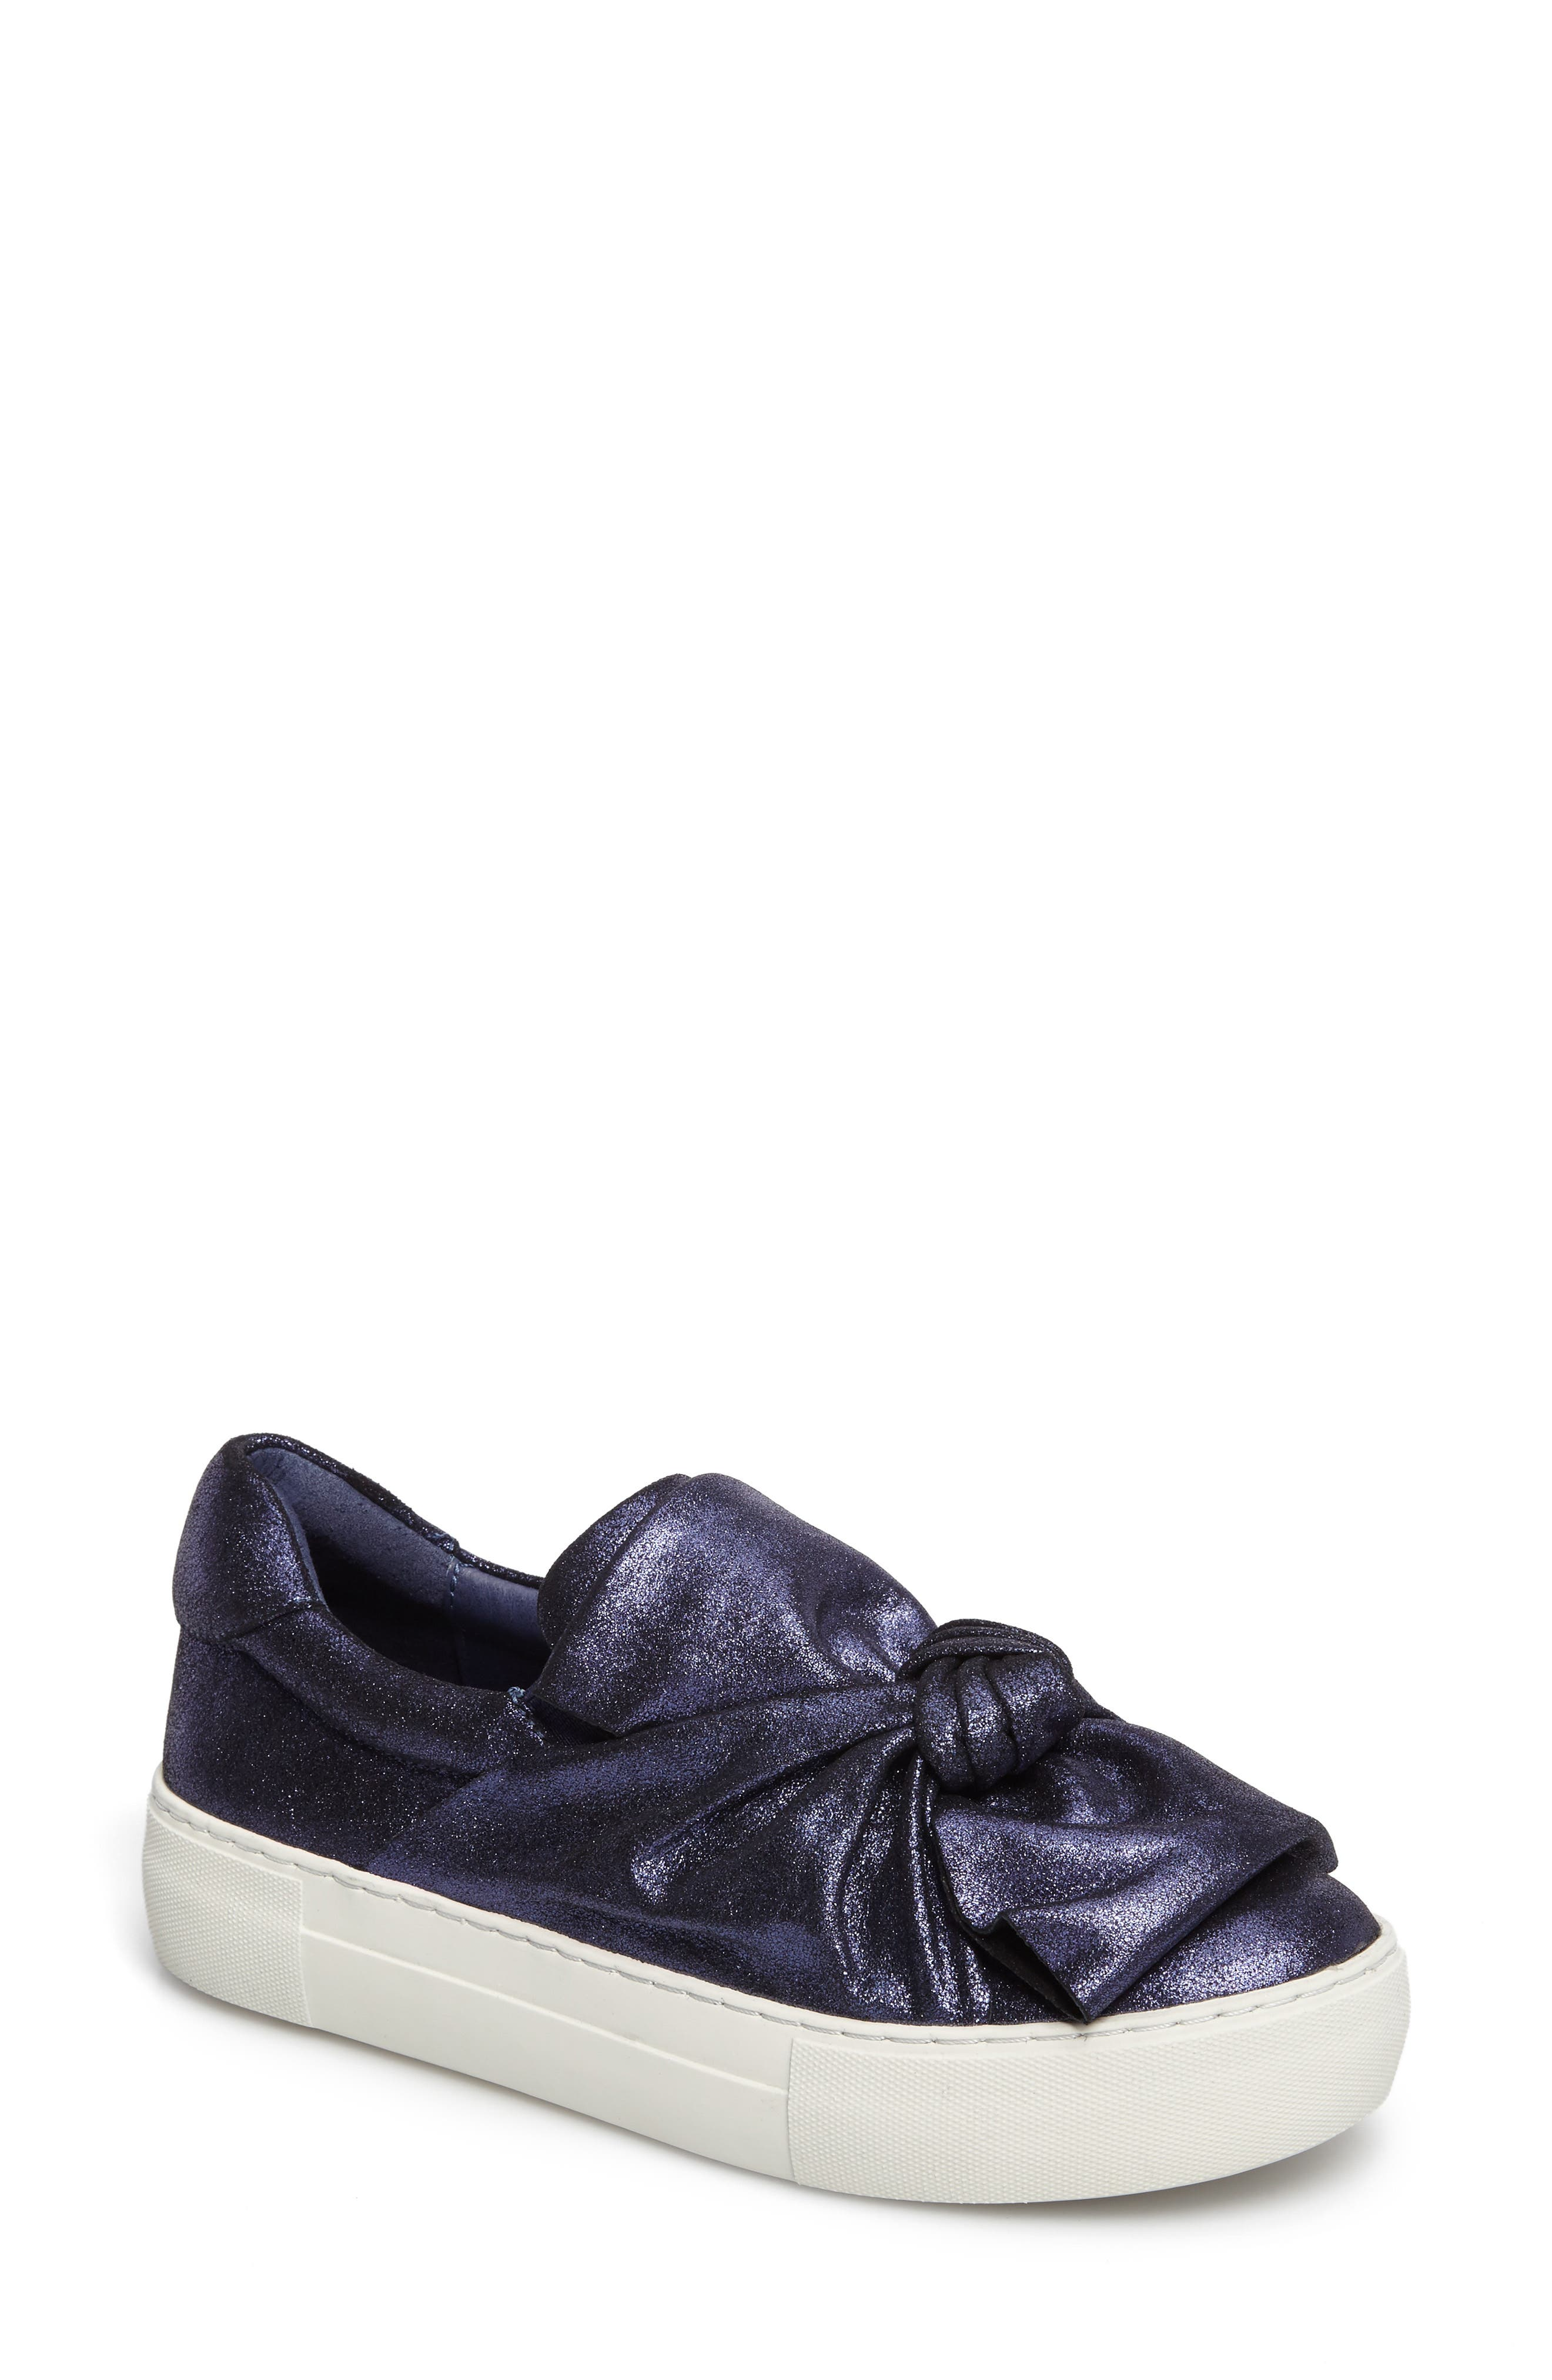 Audra Slip-On Sneaker,                             Main thumbnail 1, color,                             Navy Leather